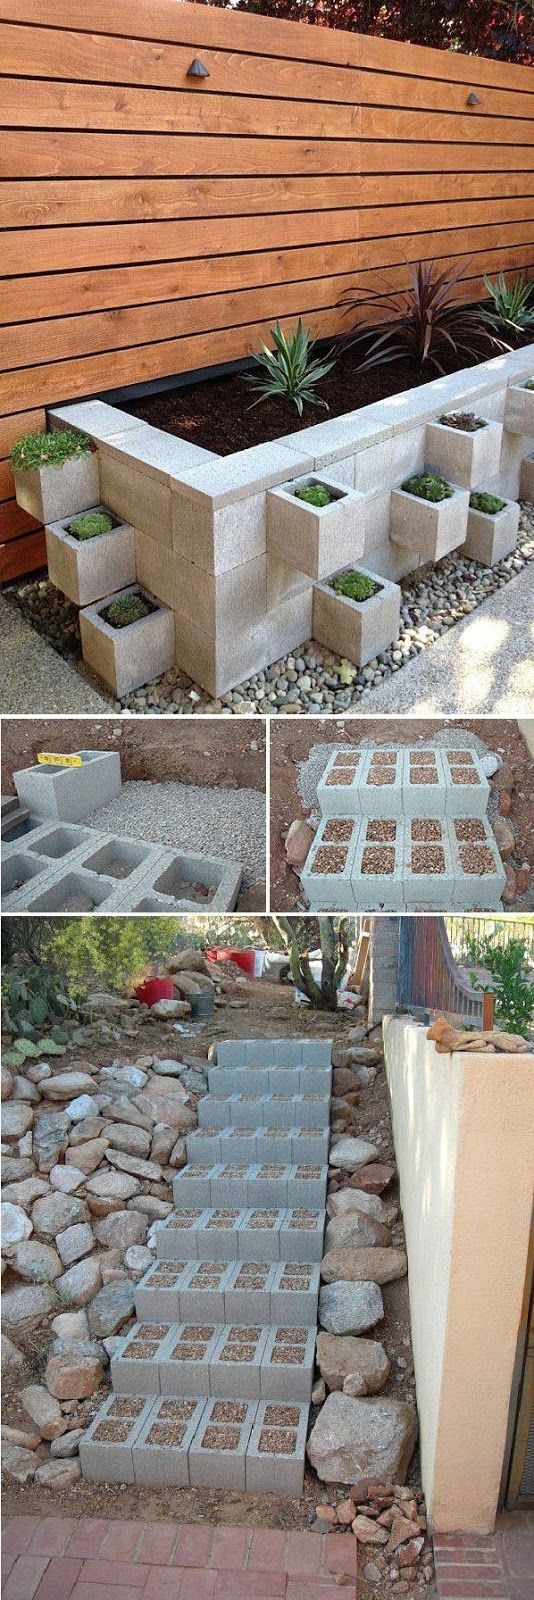 Steps  – Build outdoor steps with cinder blocks, then fill in the holes with small pebbles to ensure nobody sprains an ankle by tripping...